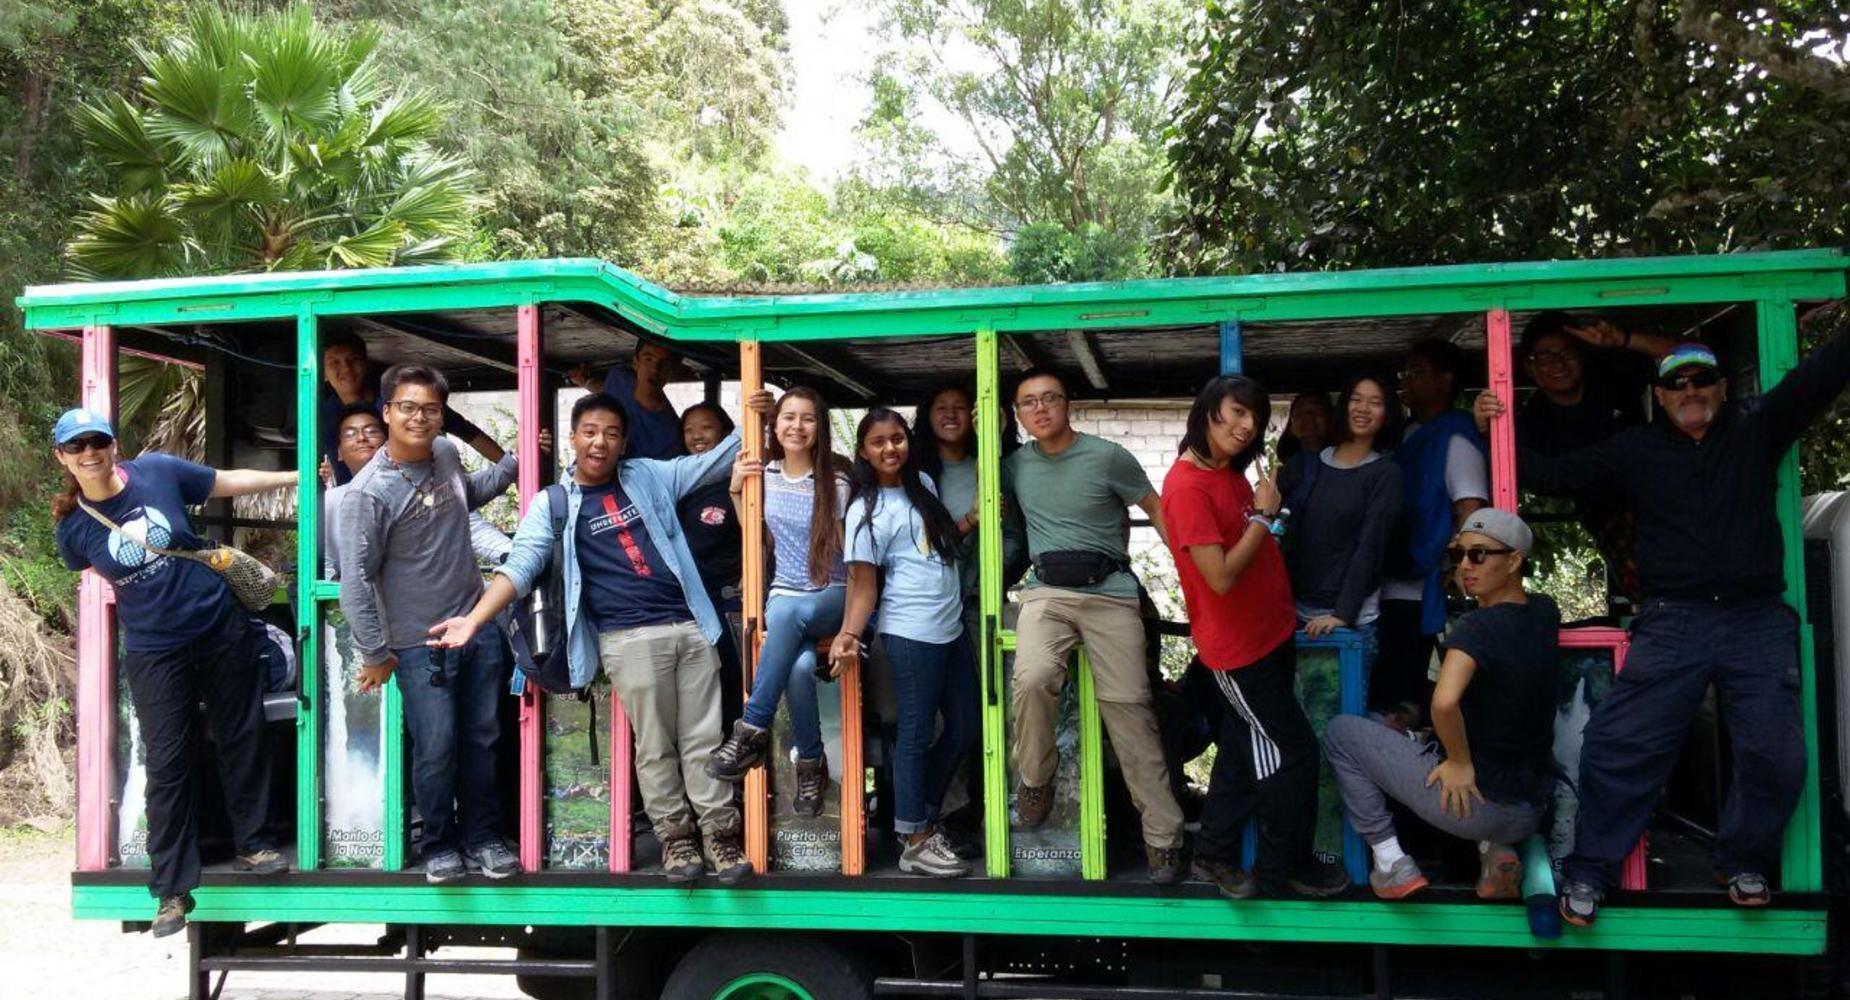 Students on a bus in Ecuador